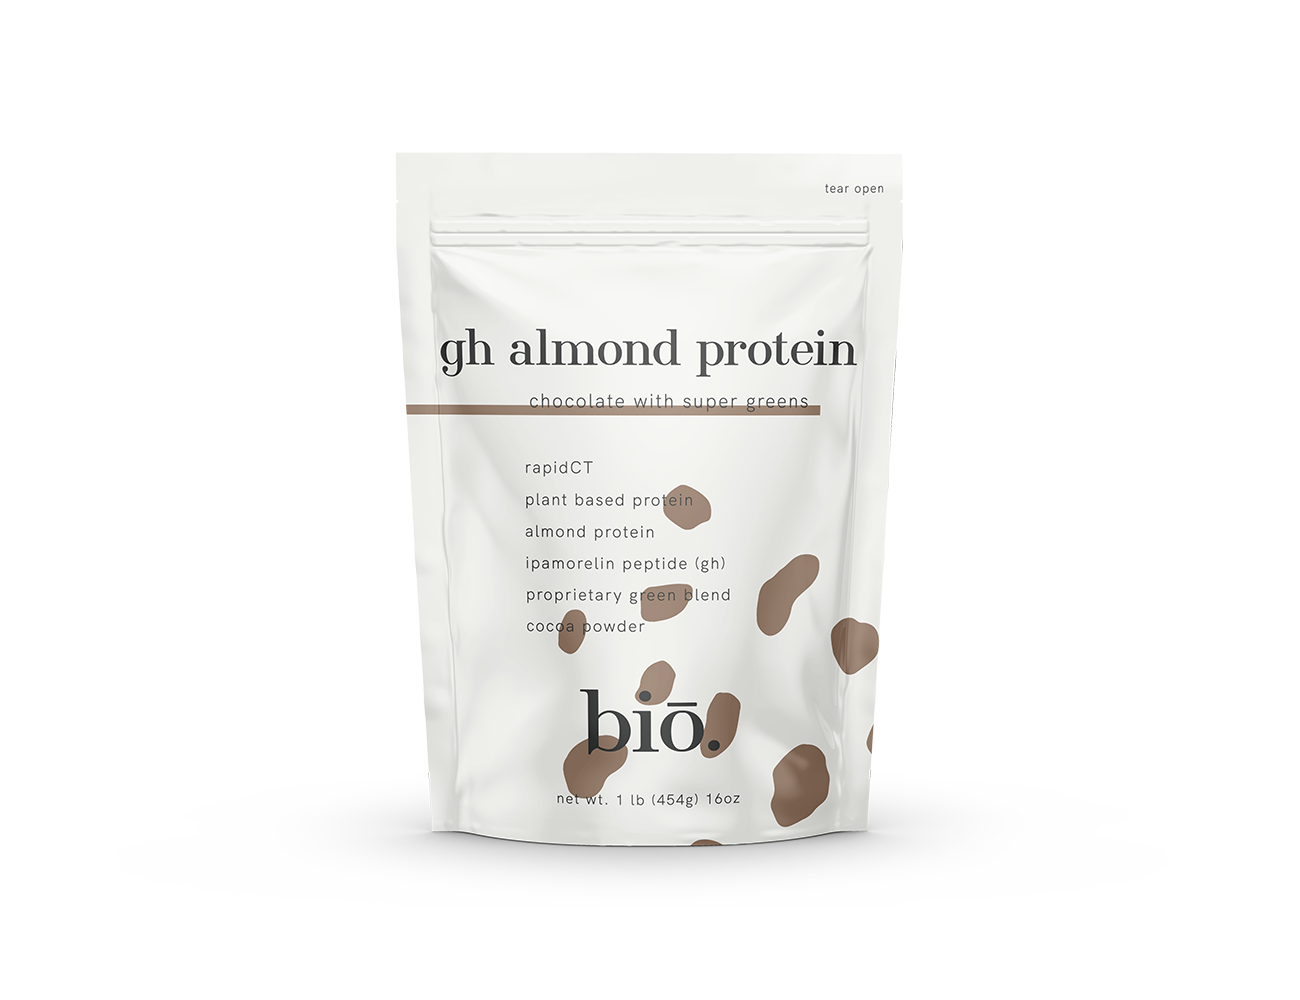 gh almond protein | chocolate